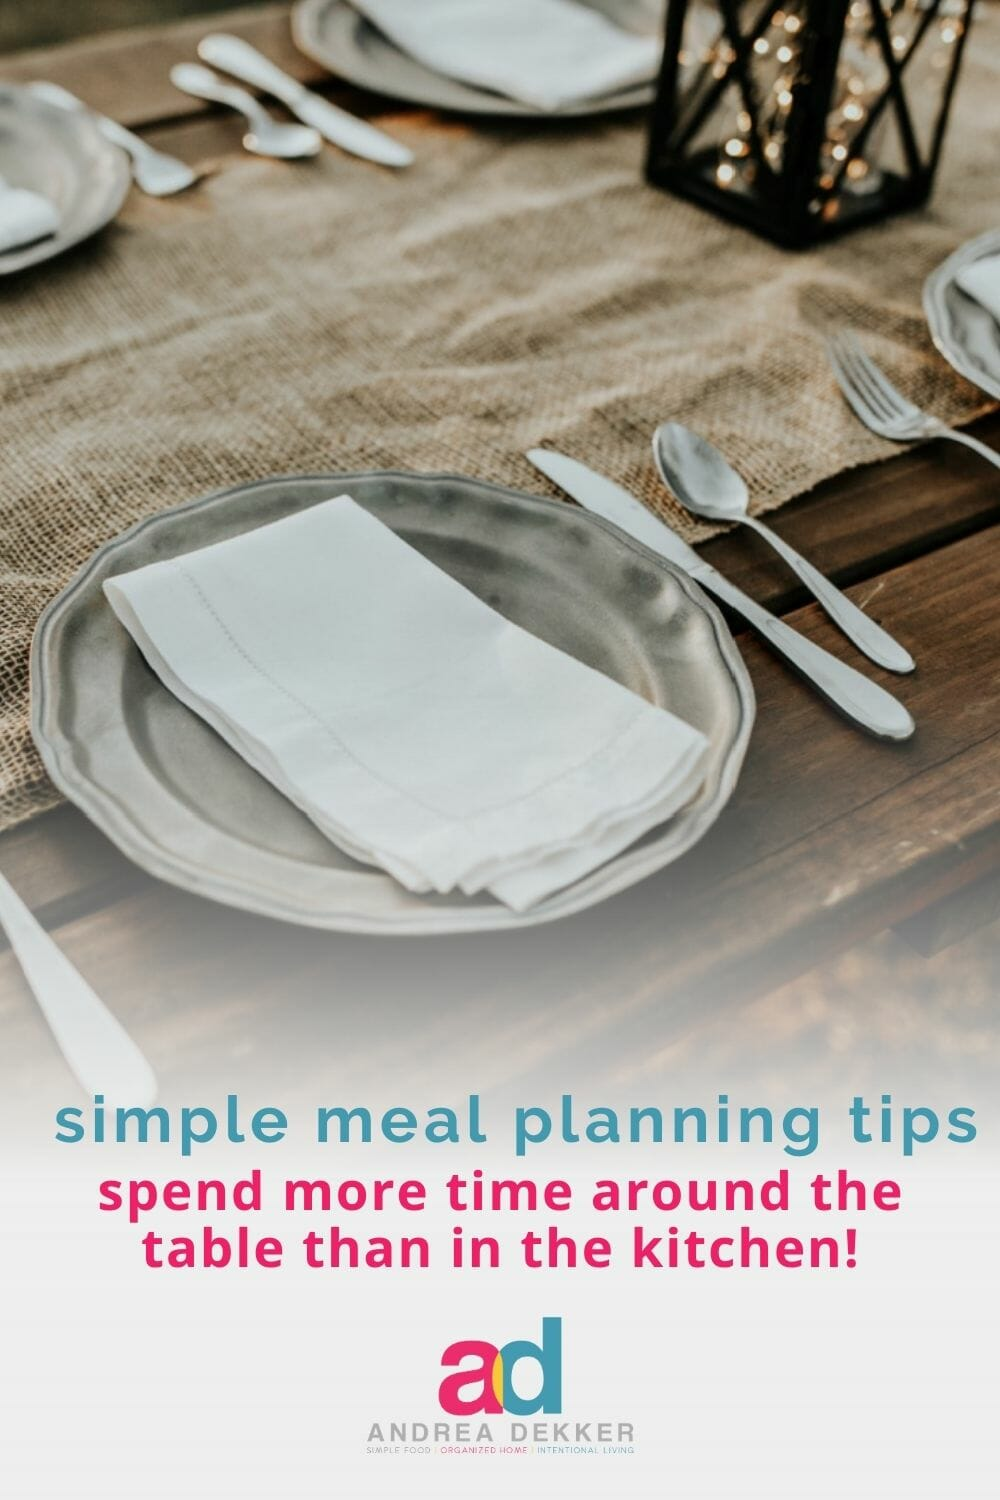 Are sit-down family meals one of your priorities? If so, gather family and friends around your table… I'll show you how to feed them without spending all day in the kitchen! via @andreadekker